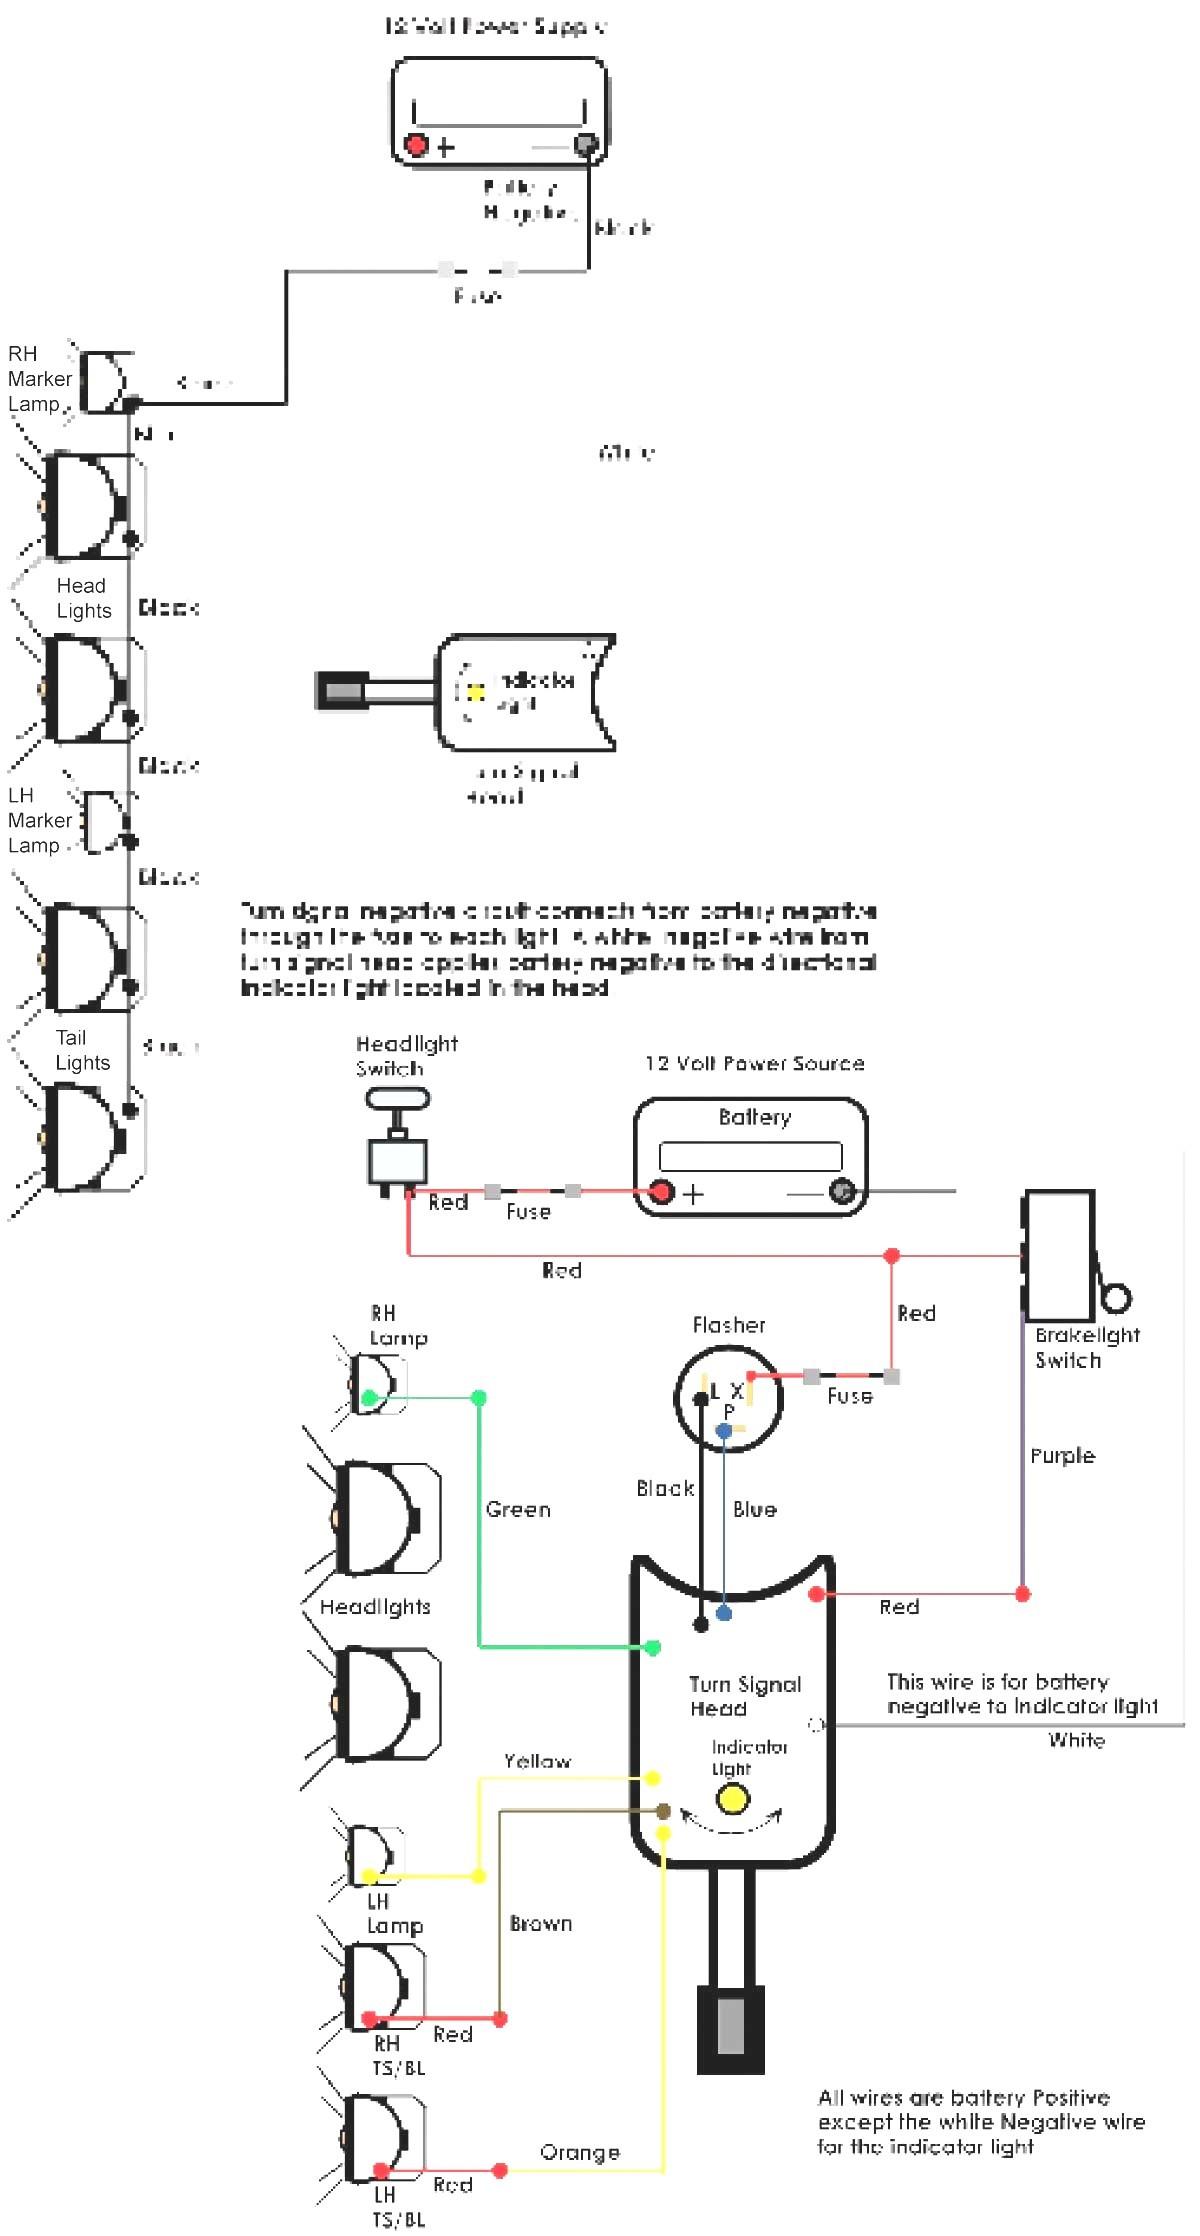 Portman Am570 Wiring Diagram Page 2 And Schematics Puch Diagrams For Motorcycles Brake Pedal Switch Light New Fresh Gm Of